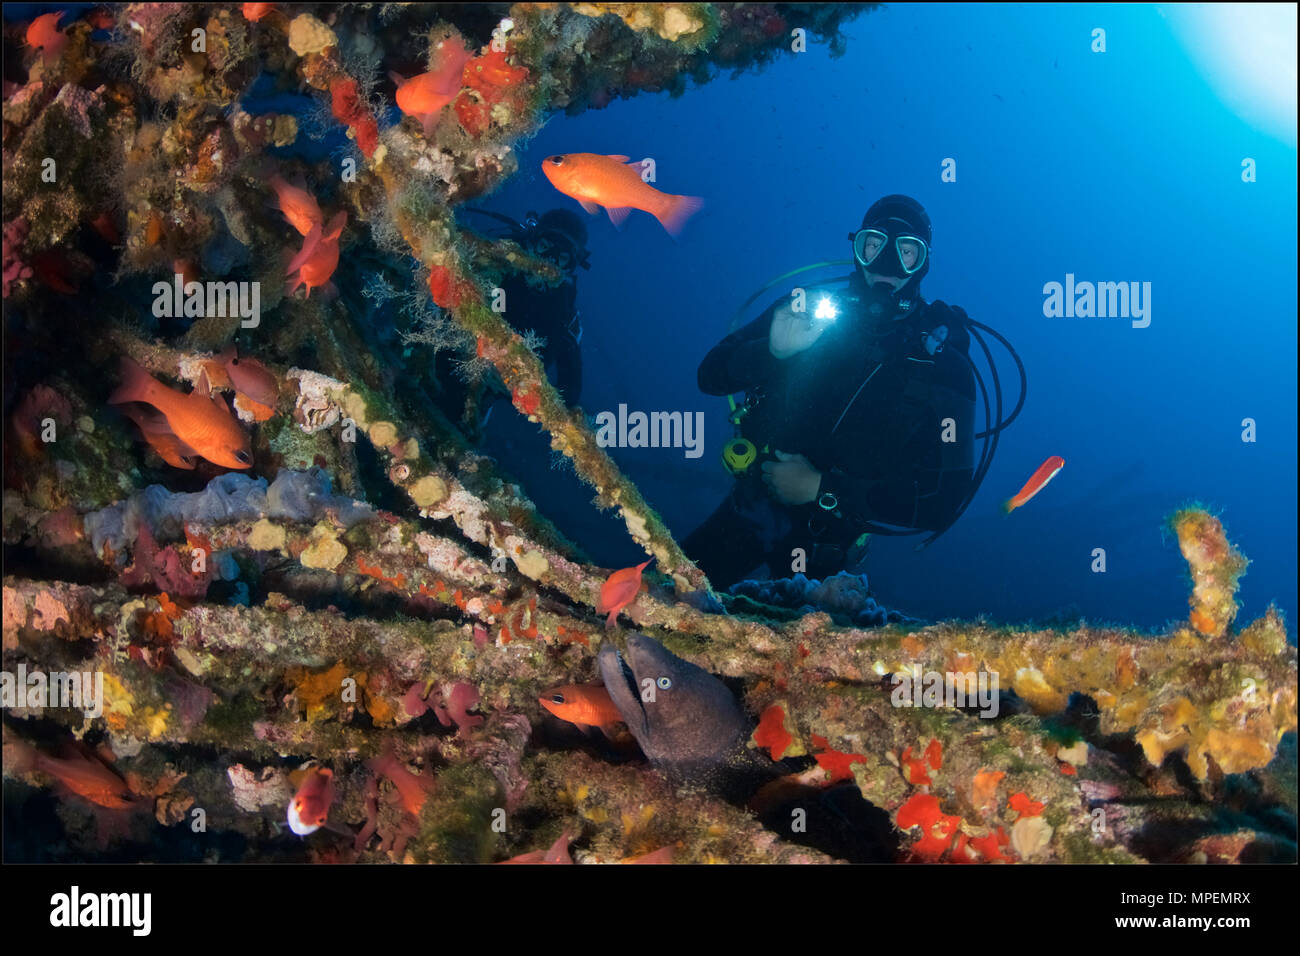 scubadiver-with-torch-cardinalfish-apogo